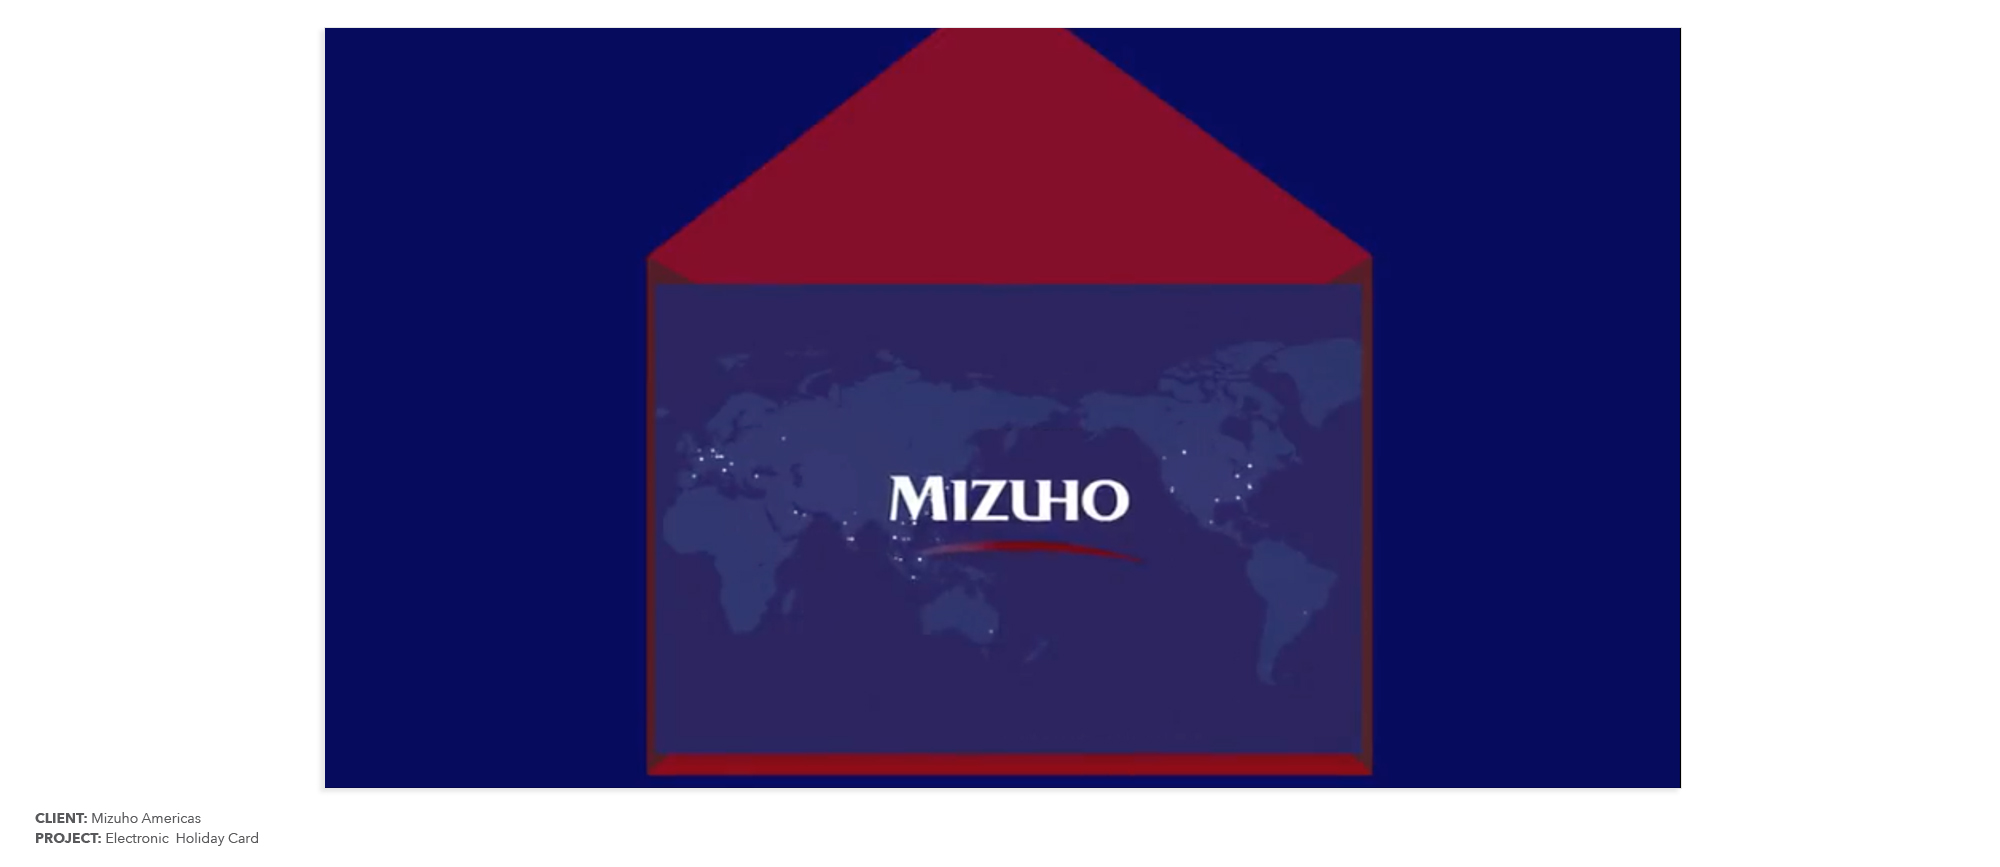 Mizuho Email Card